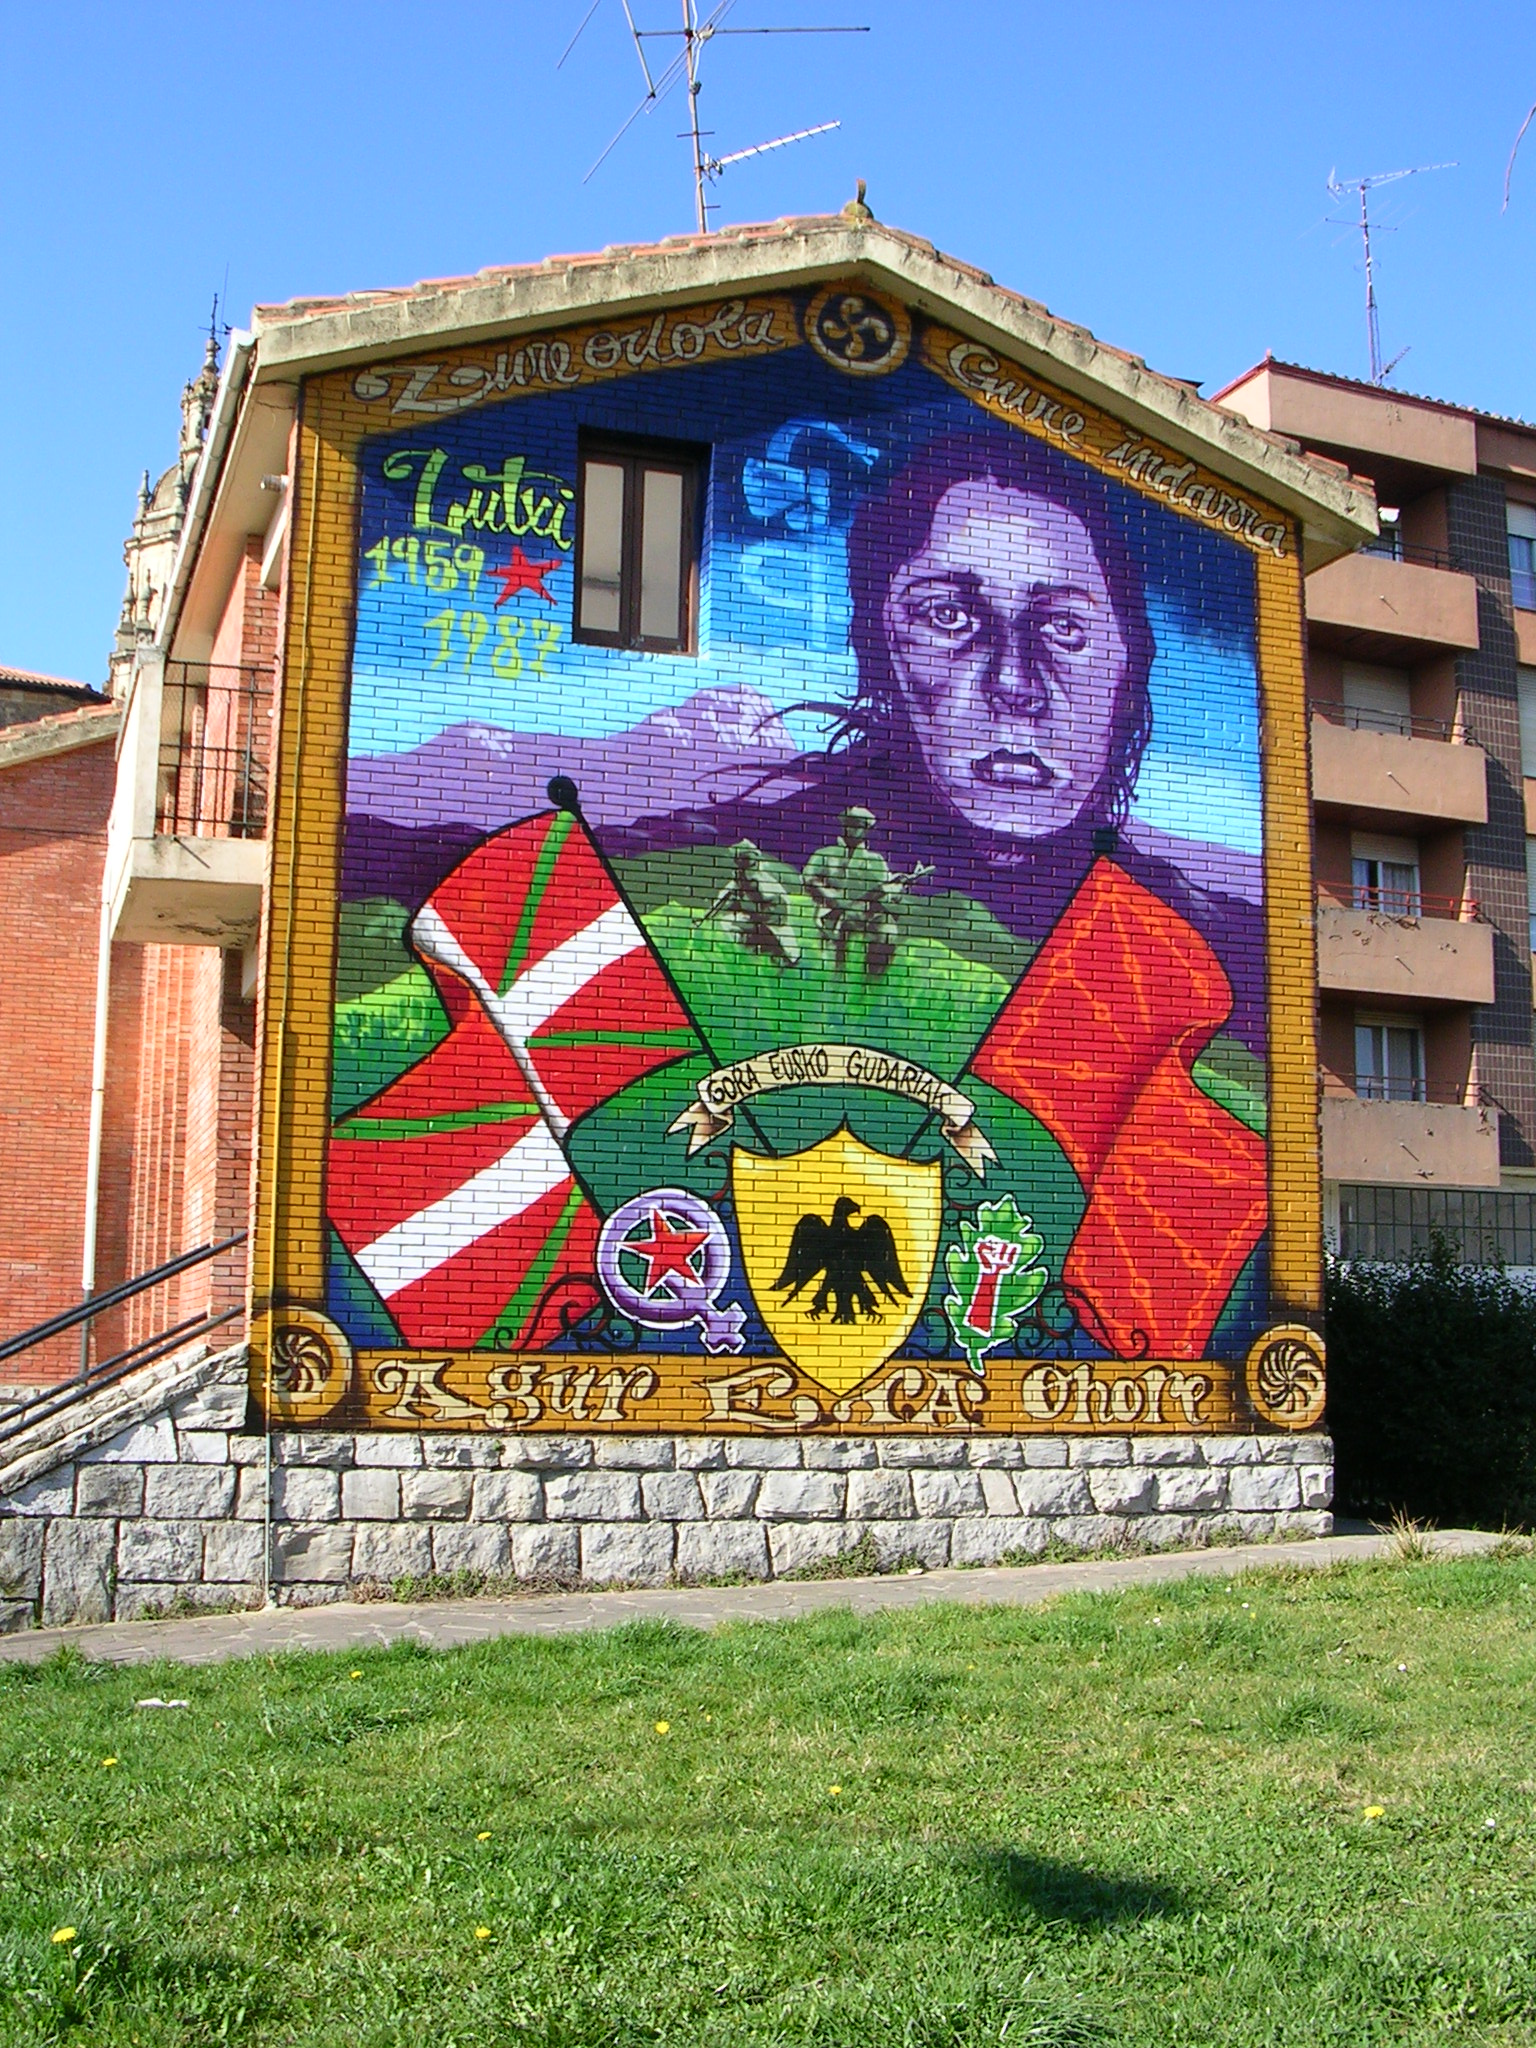 Circulations transnationales expressions murales for Mural irlande